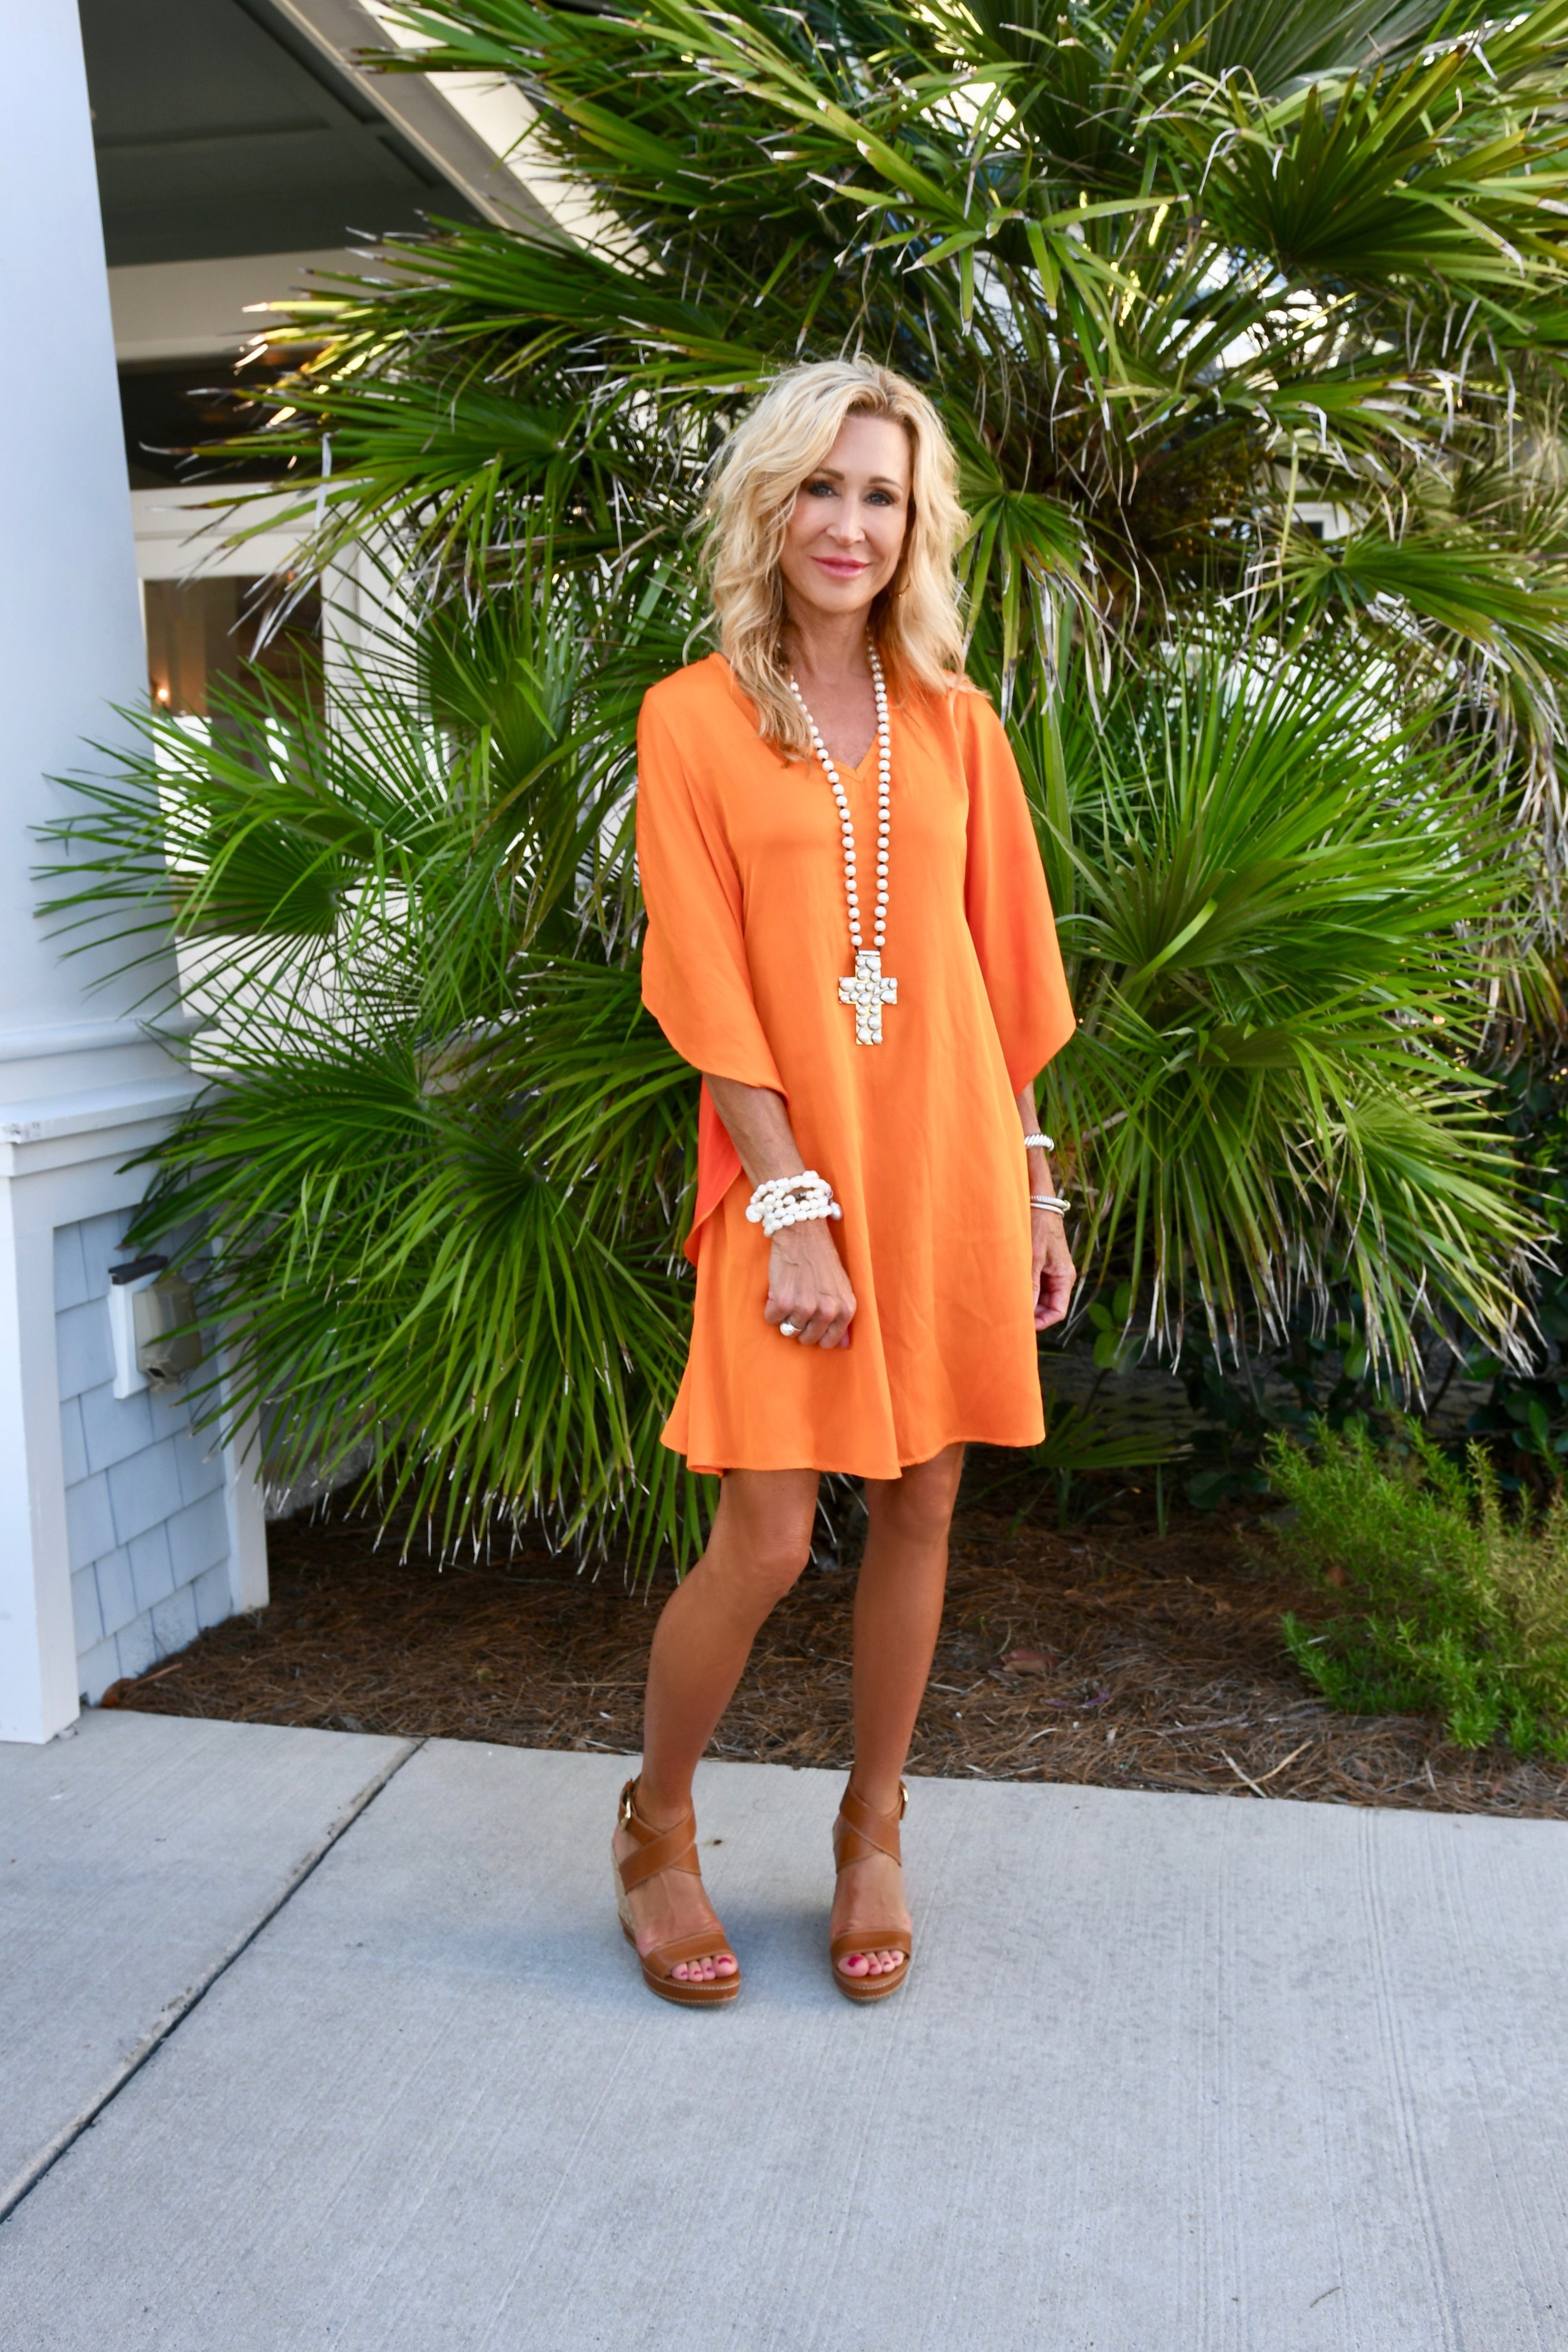 Julie Miles Dress and Cross Necklace - Beach Outfit